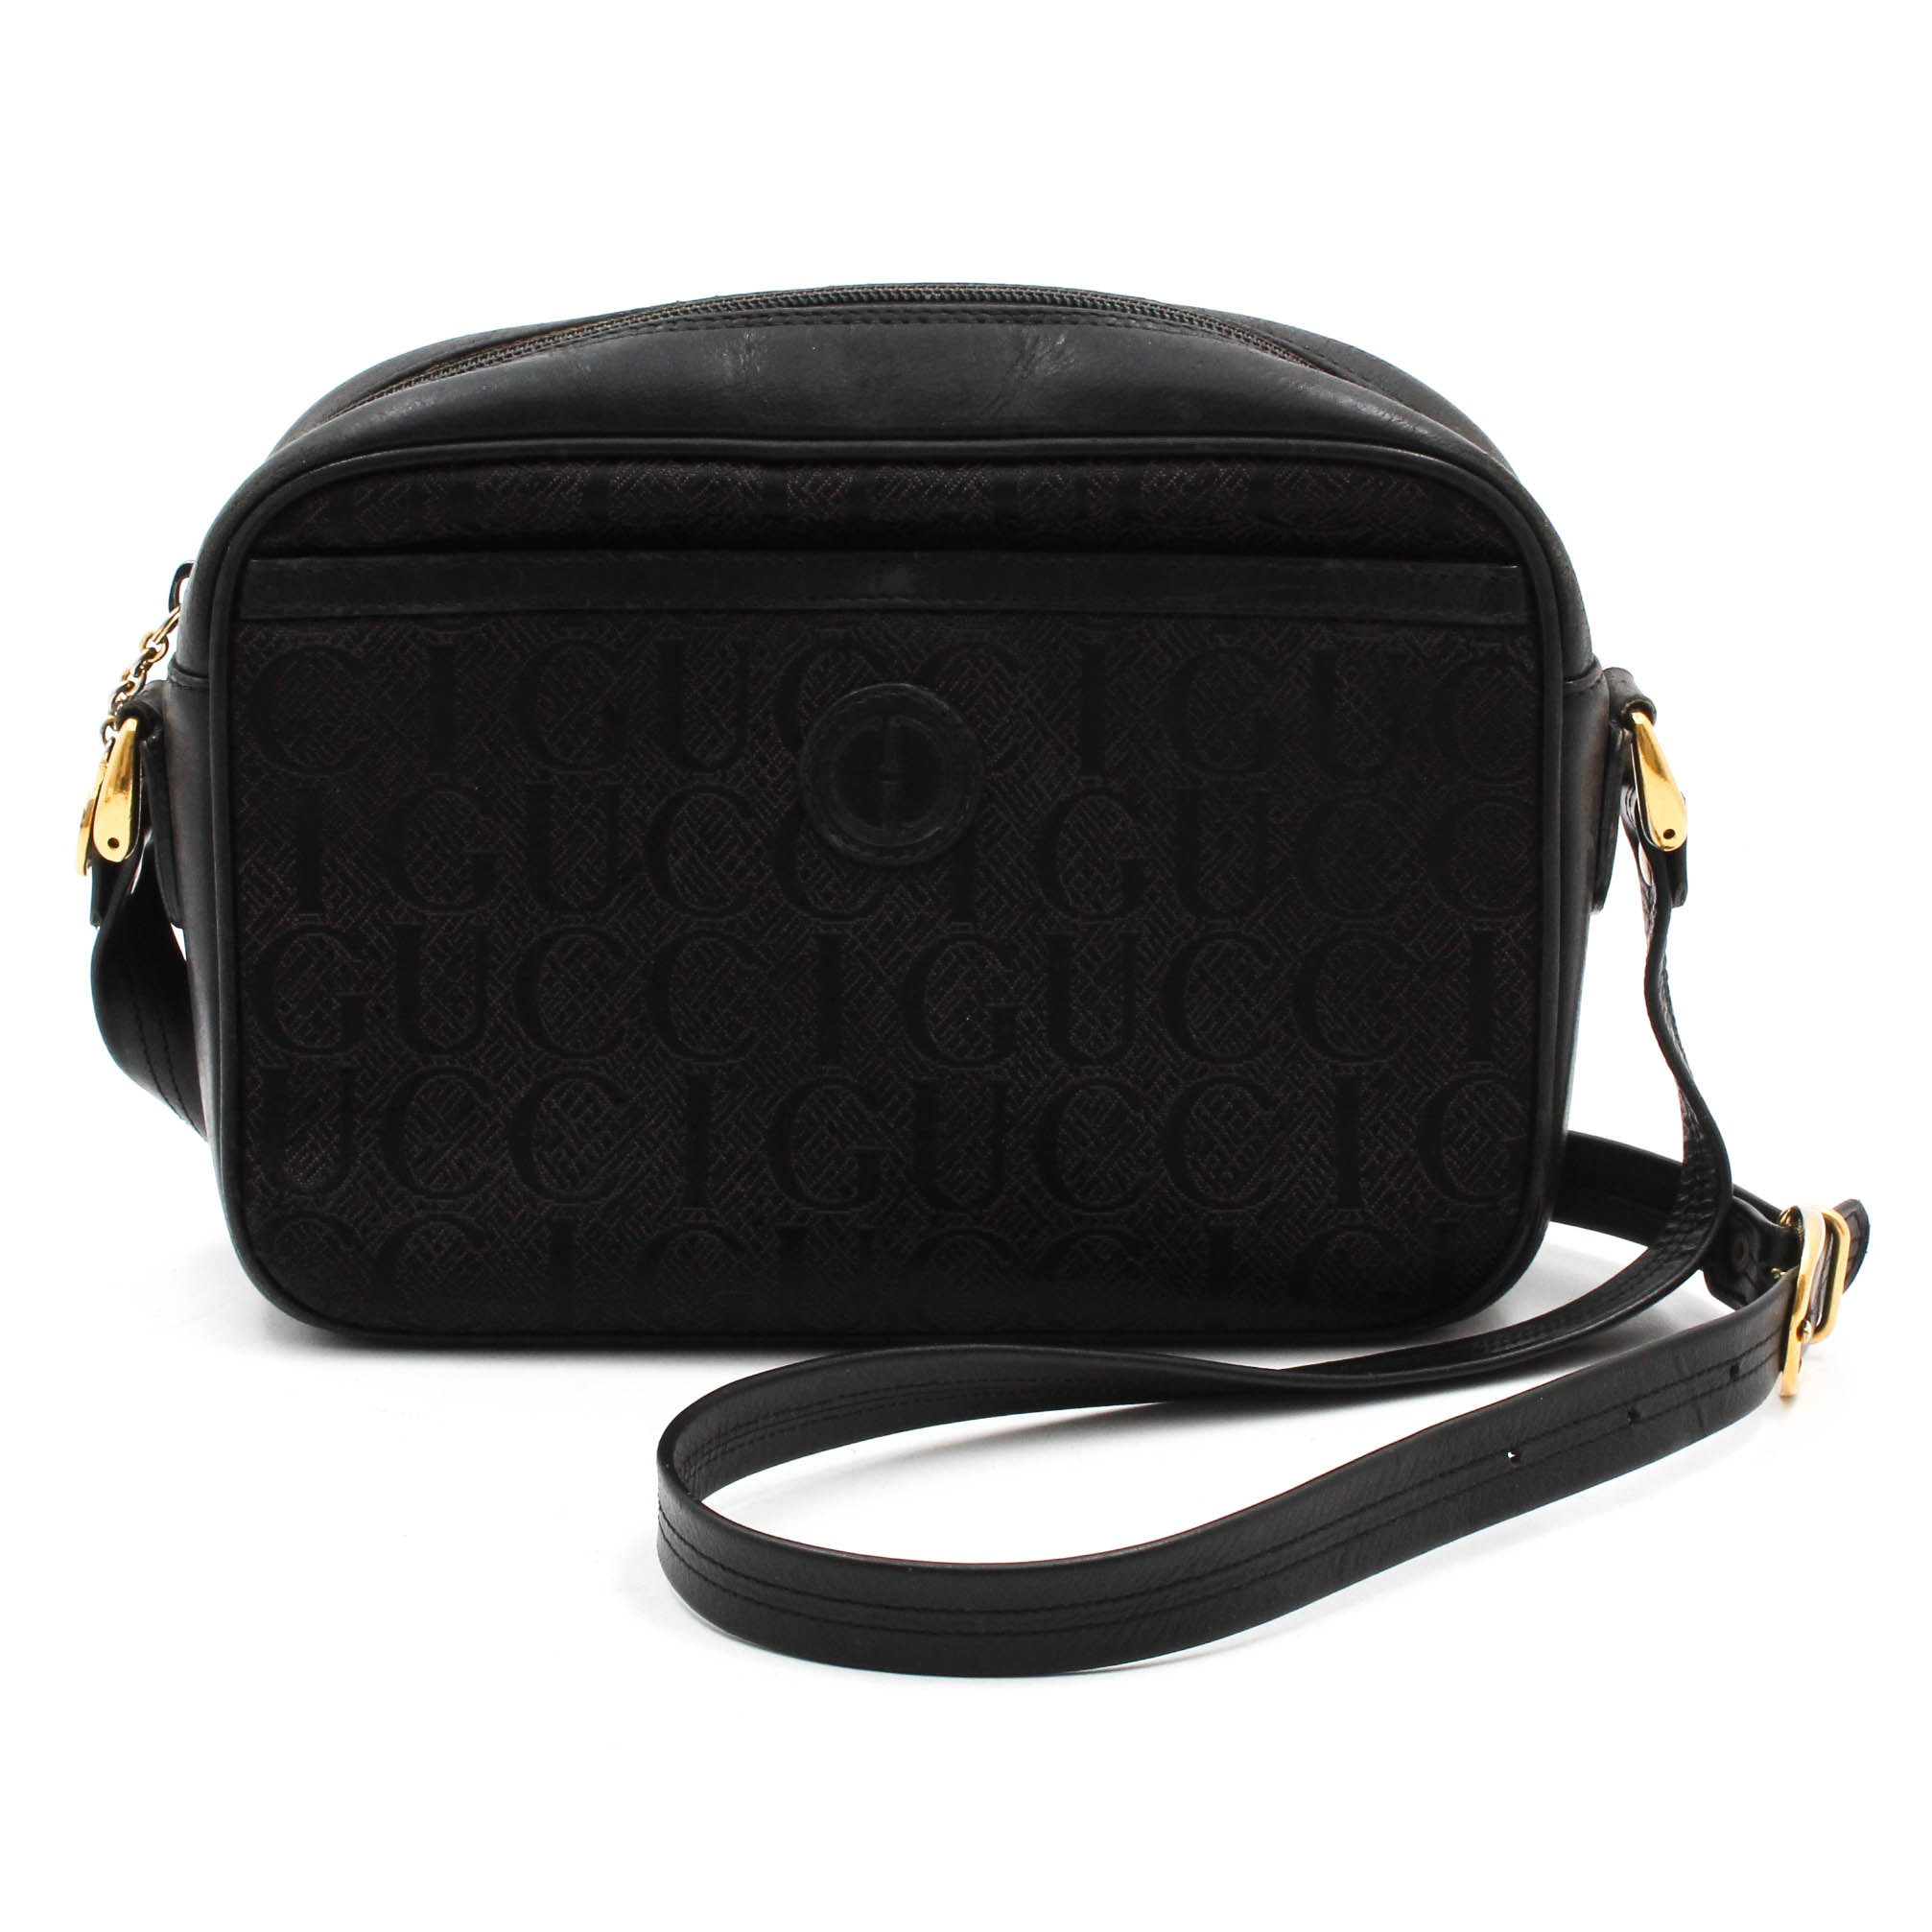 Vintage Gucci Black Signature Monogram Canvas and Leather Shoulder Bag